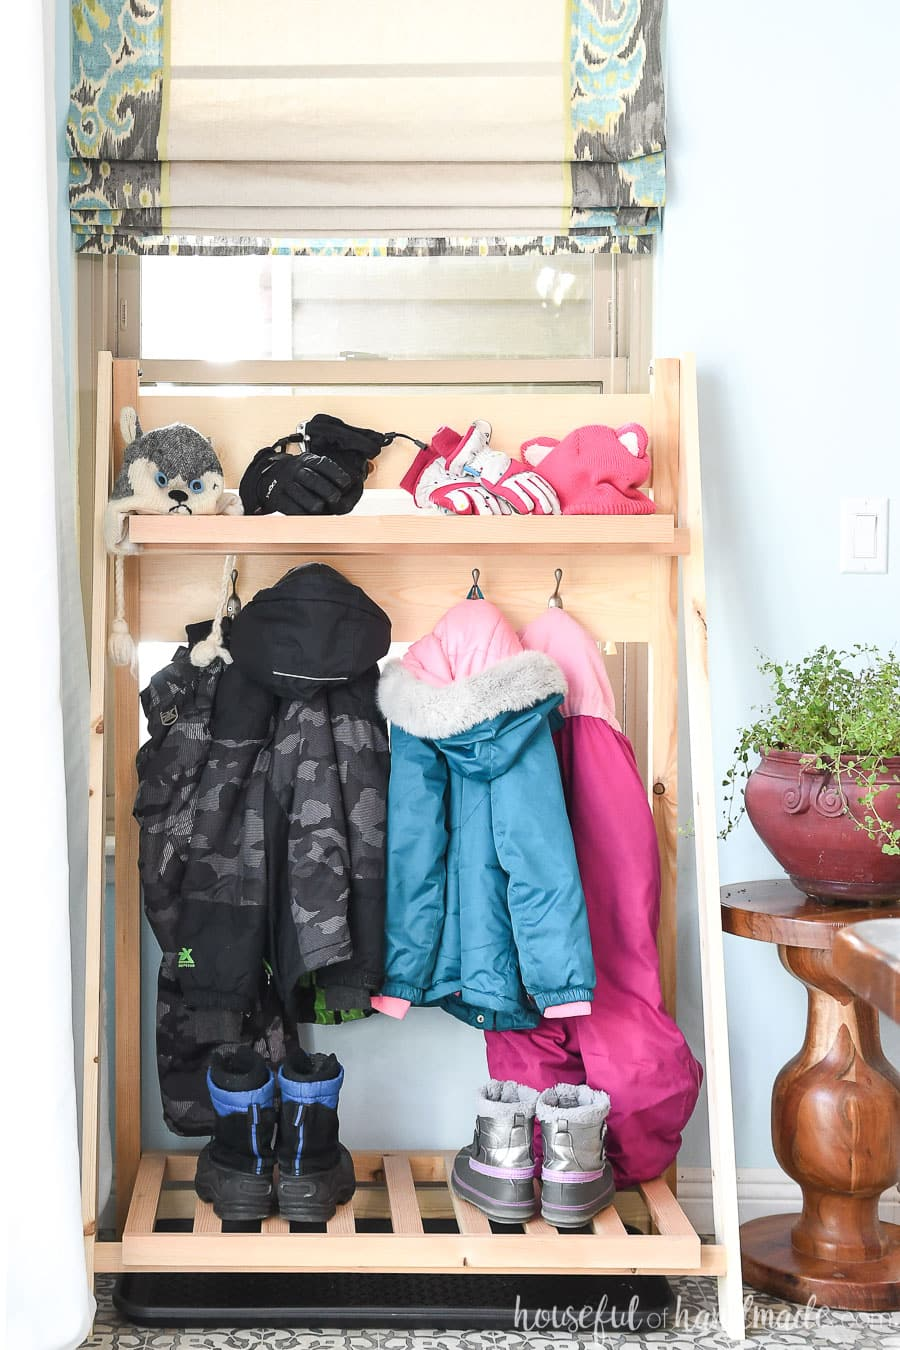 Front view of the collapsible storage shelves for the mudroom.